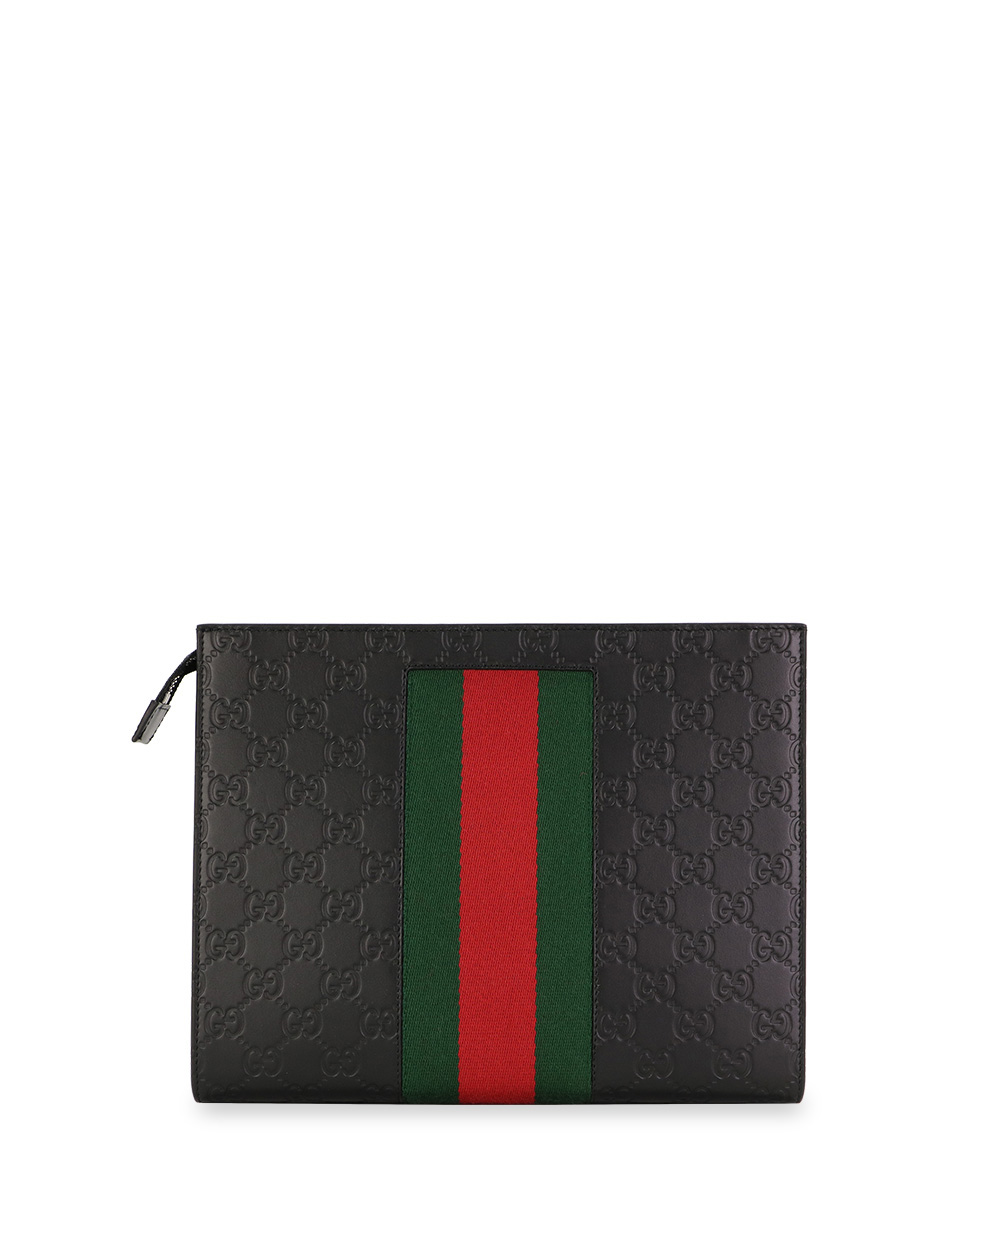 Signature Leather Pouch 2